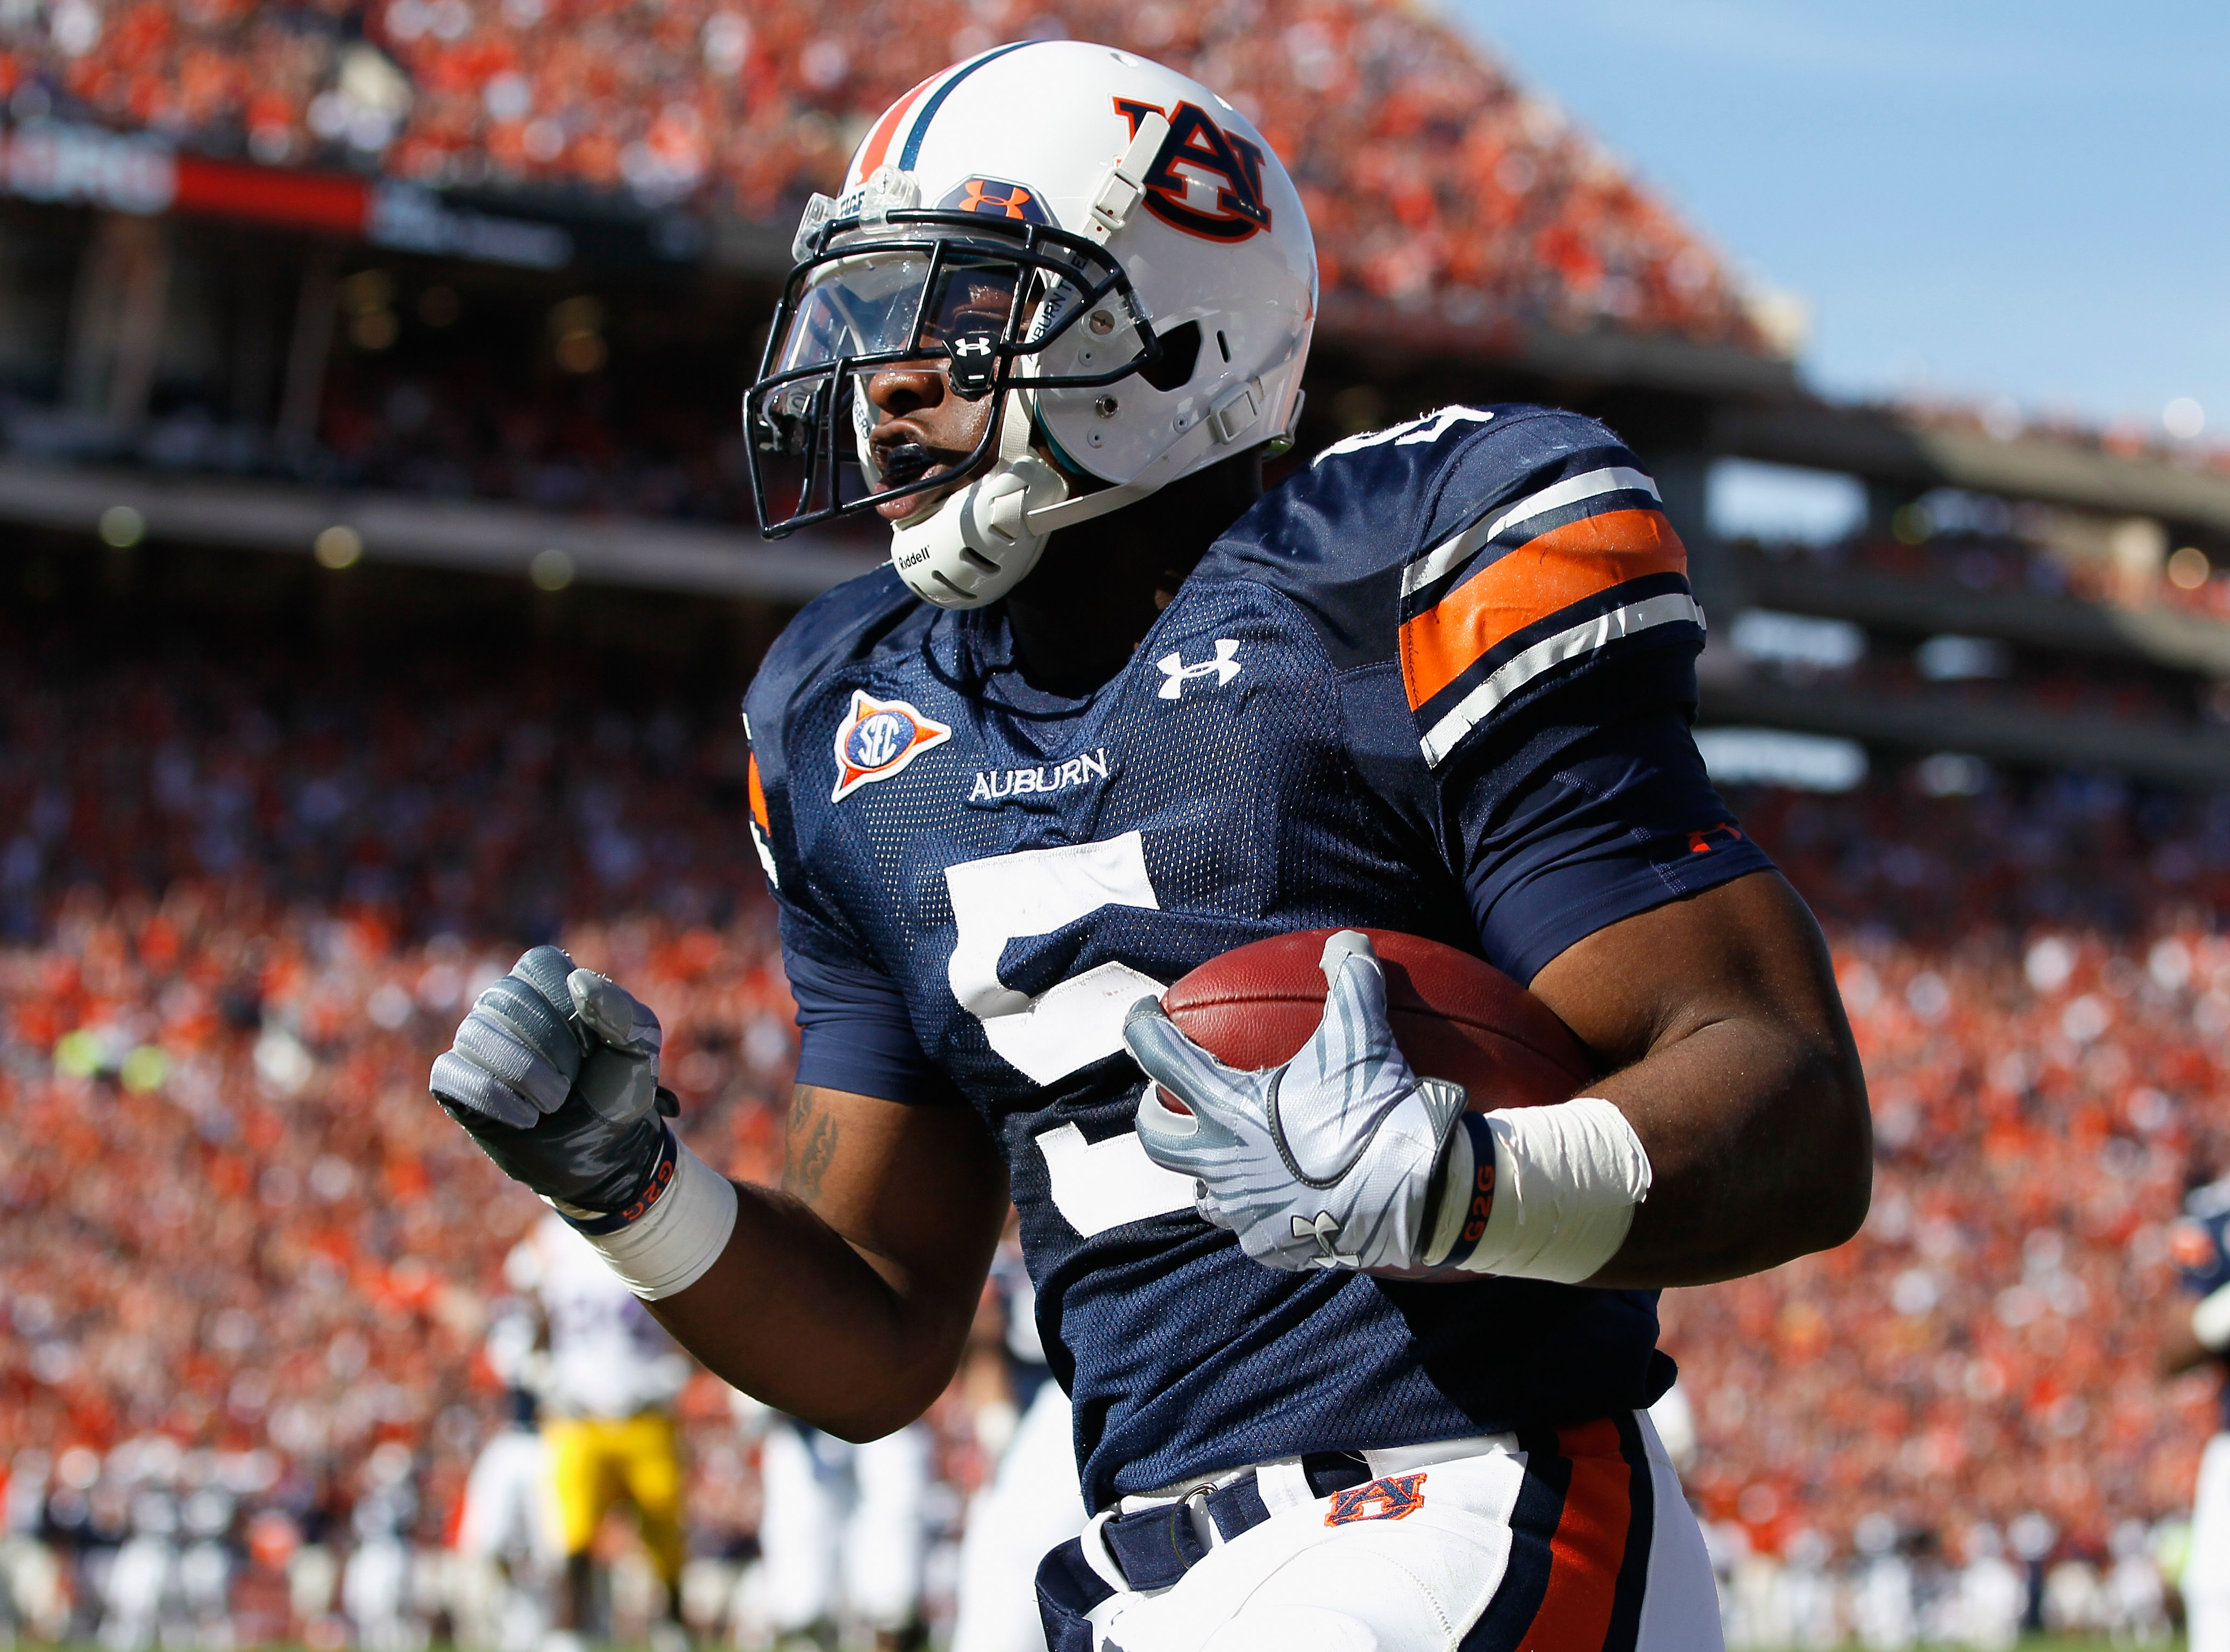 Dyer gives Auburn more than a punchers chance. Still it will be tough to come close to last year's successes.